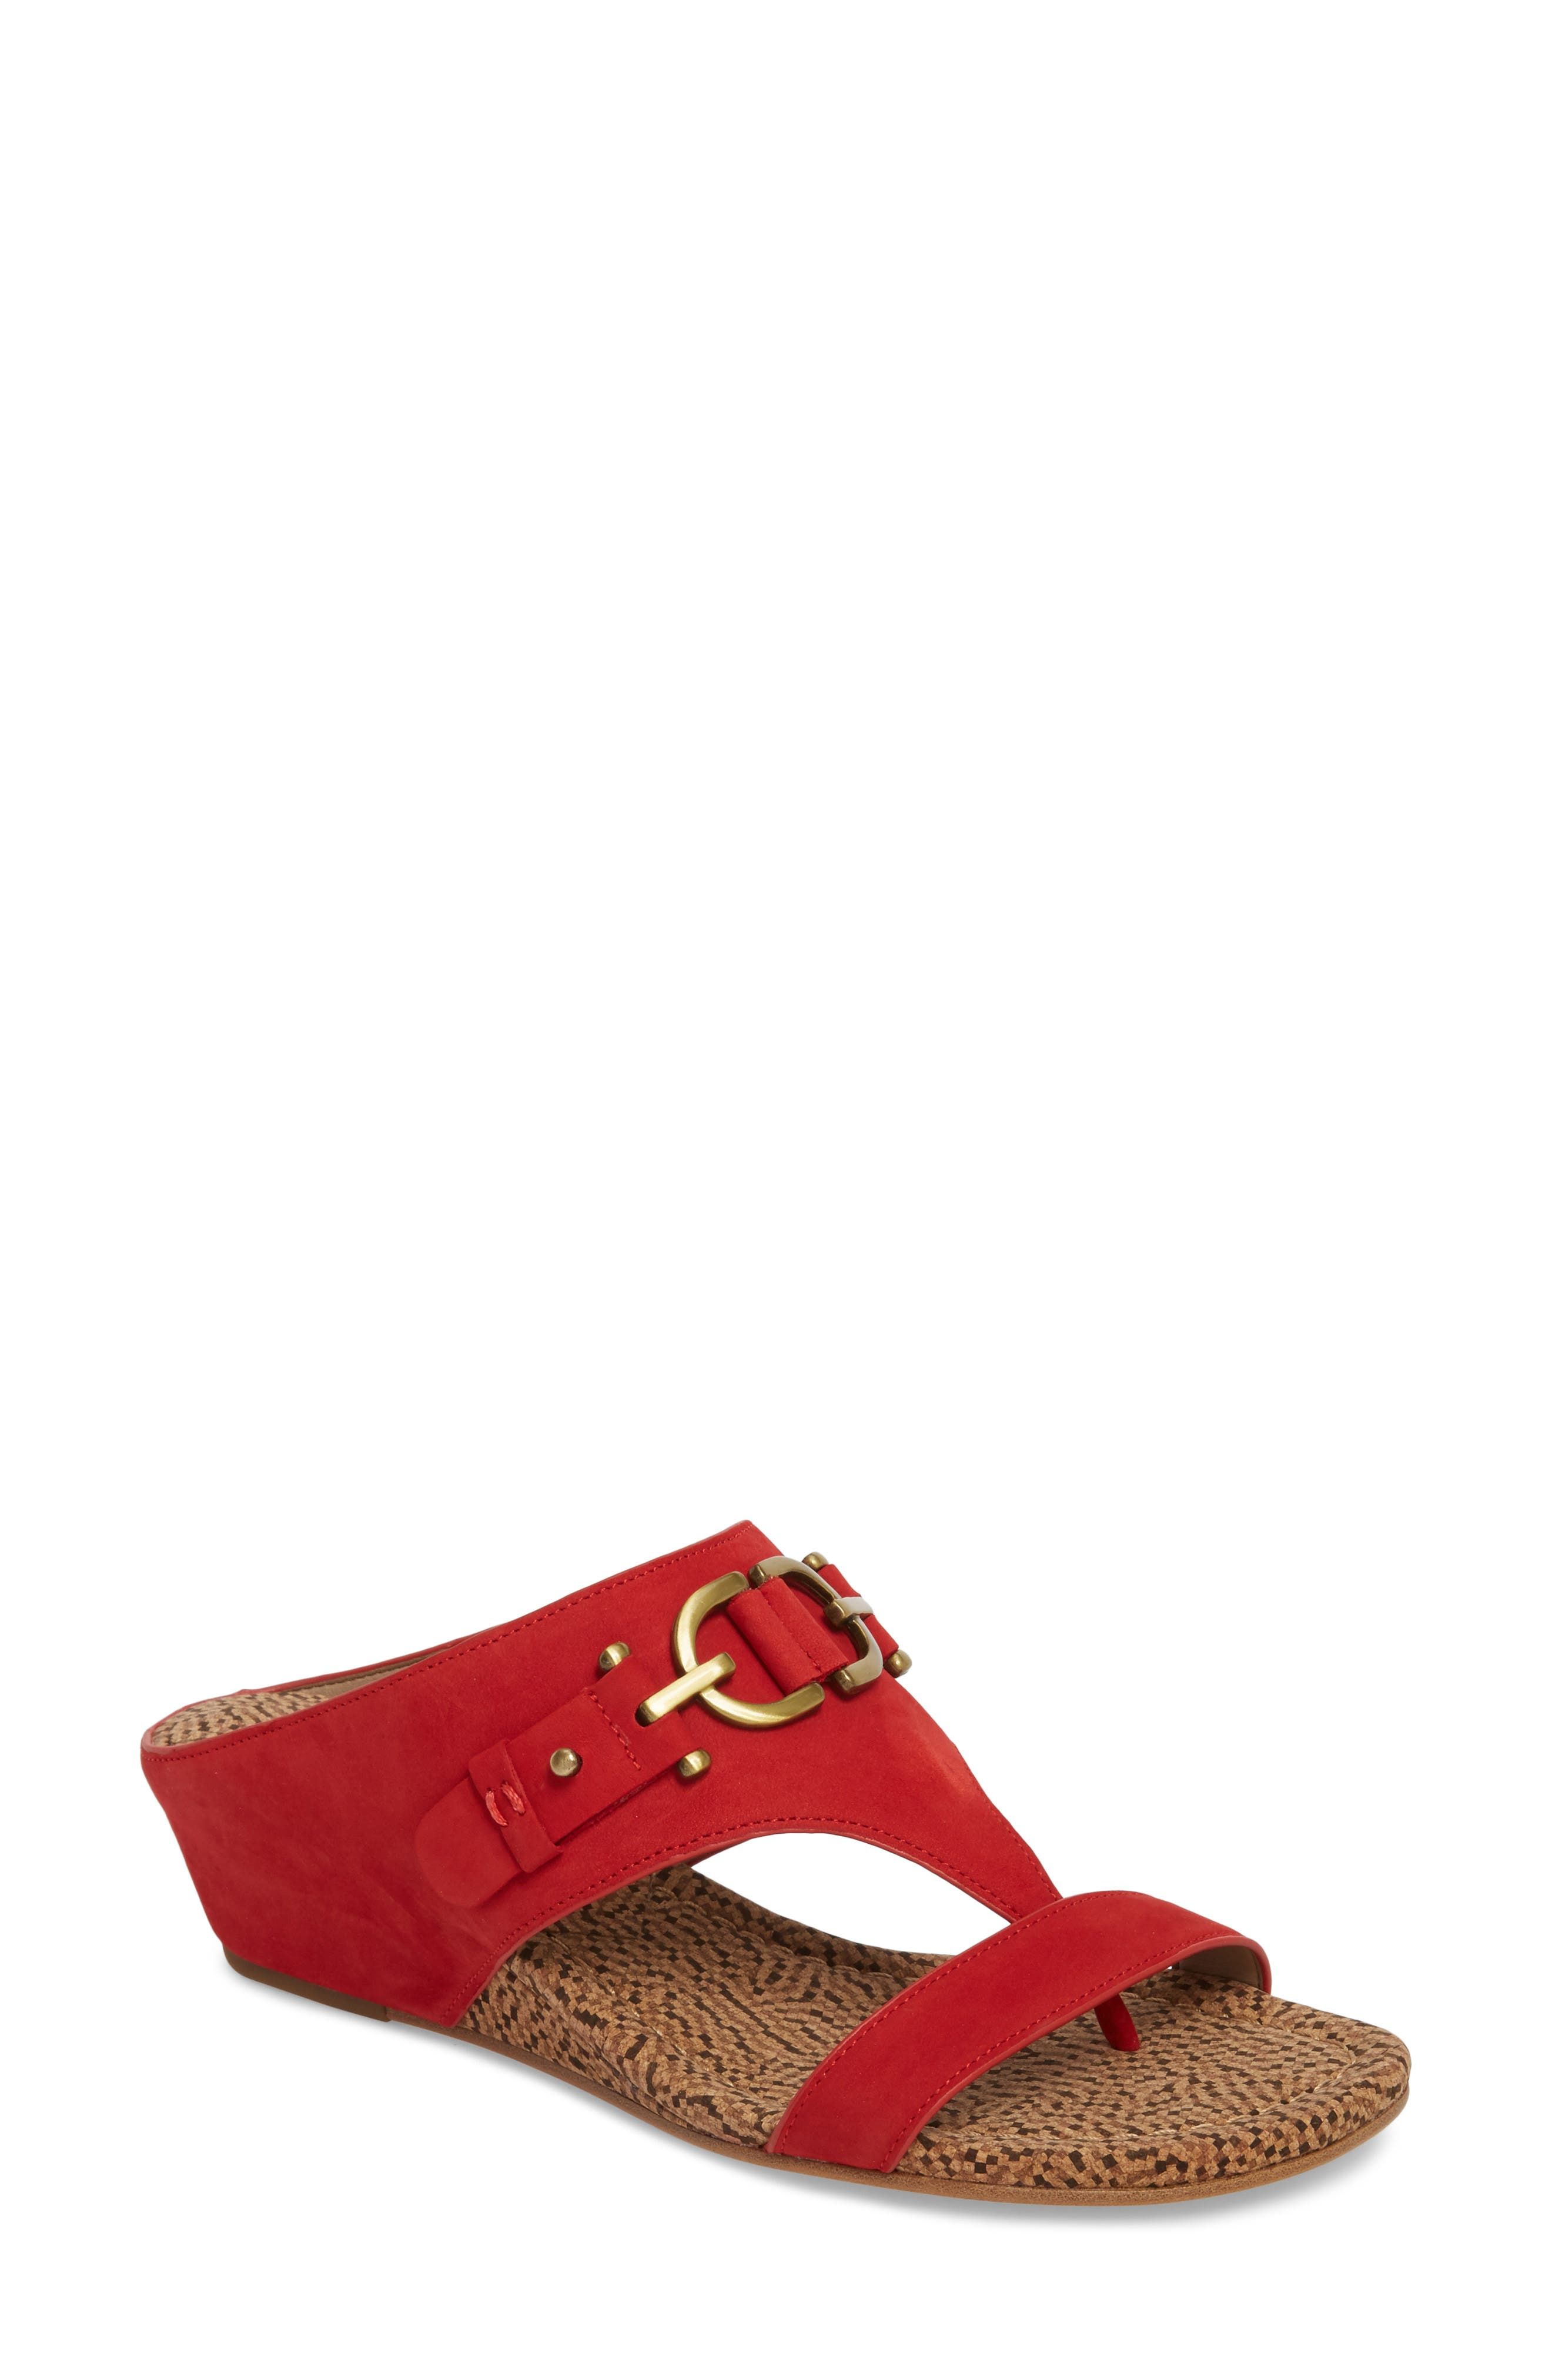 Dayna Wedge Sandal,                         Main,                         color, Poppy Leather